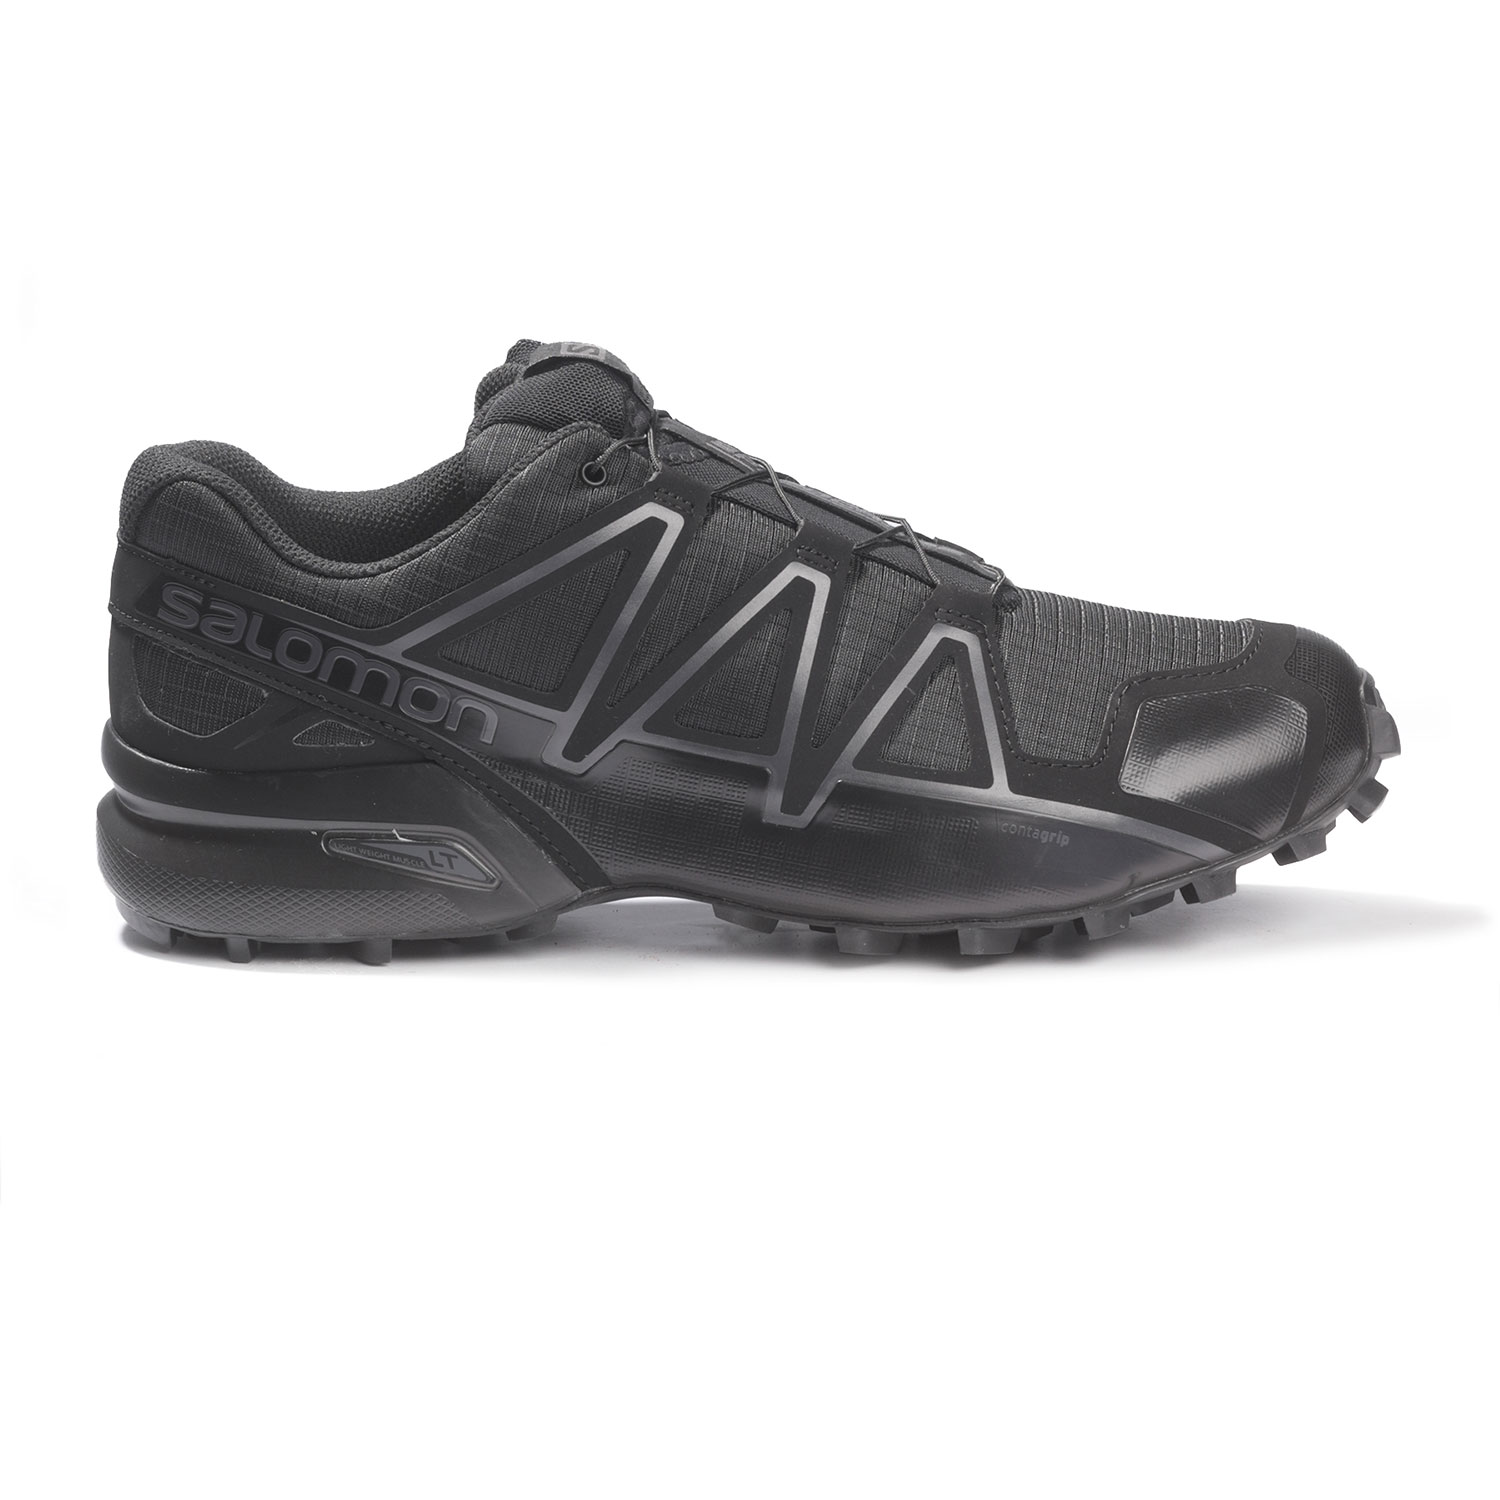 Salomon Speedcross 4 Wide Forces.